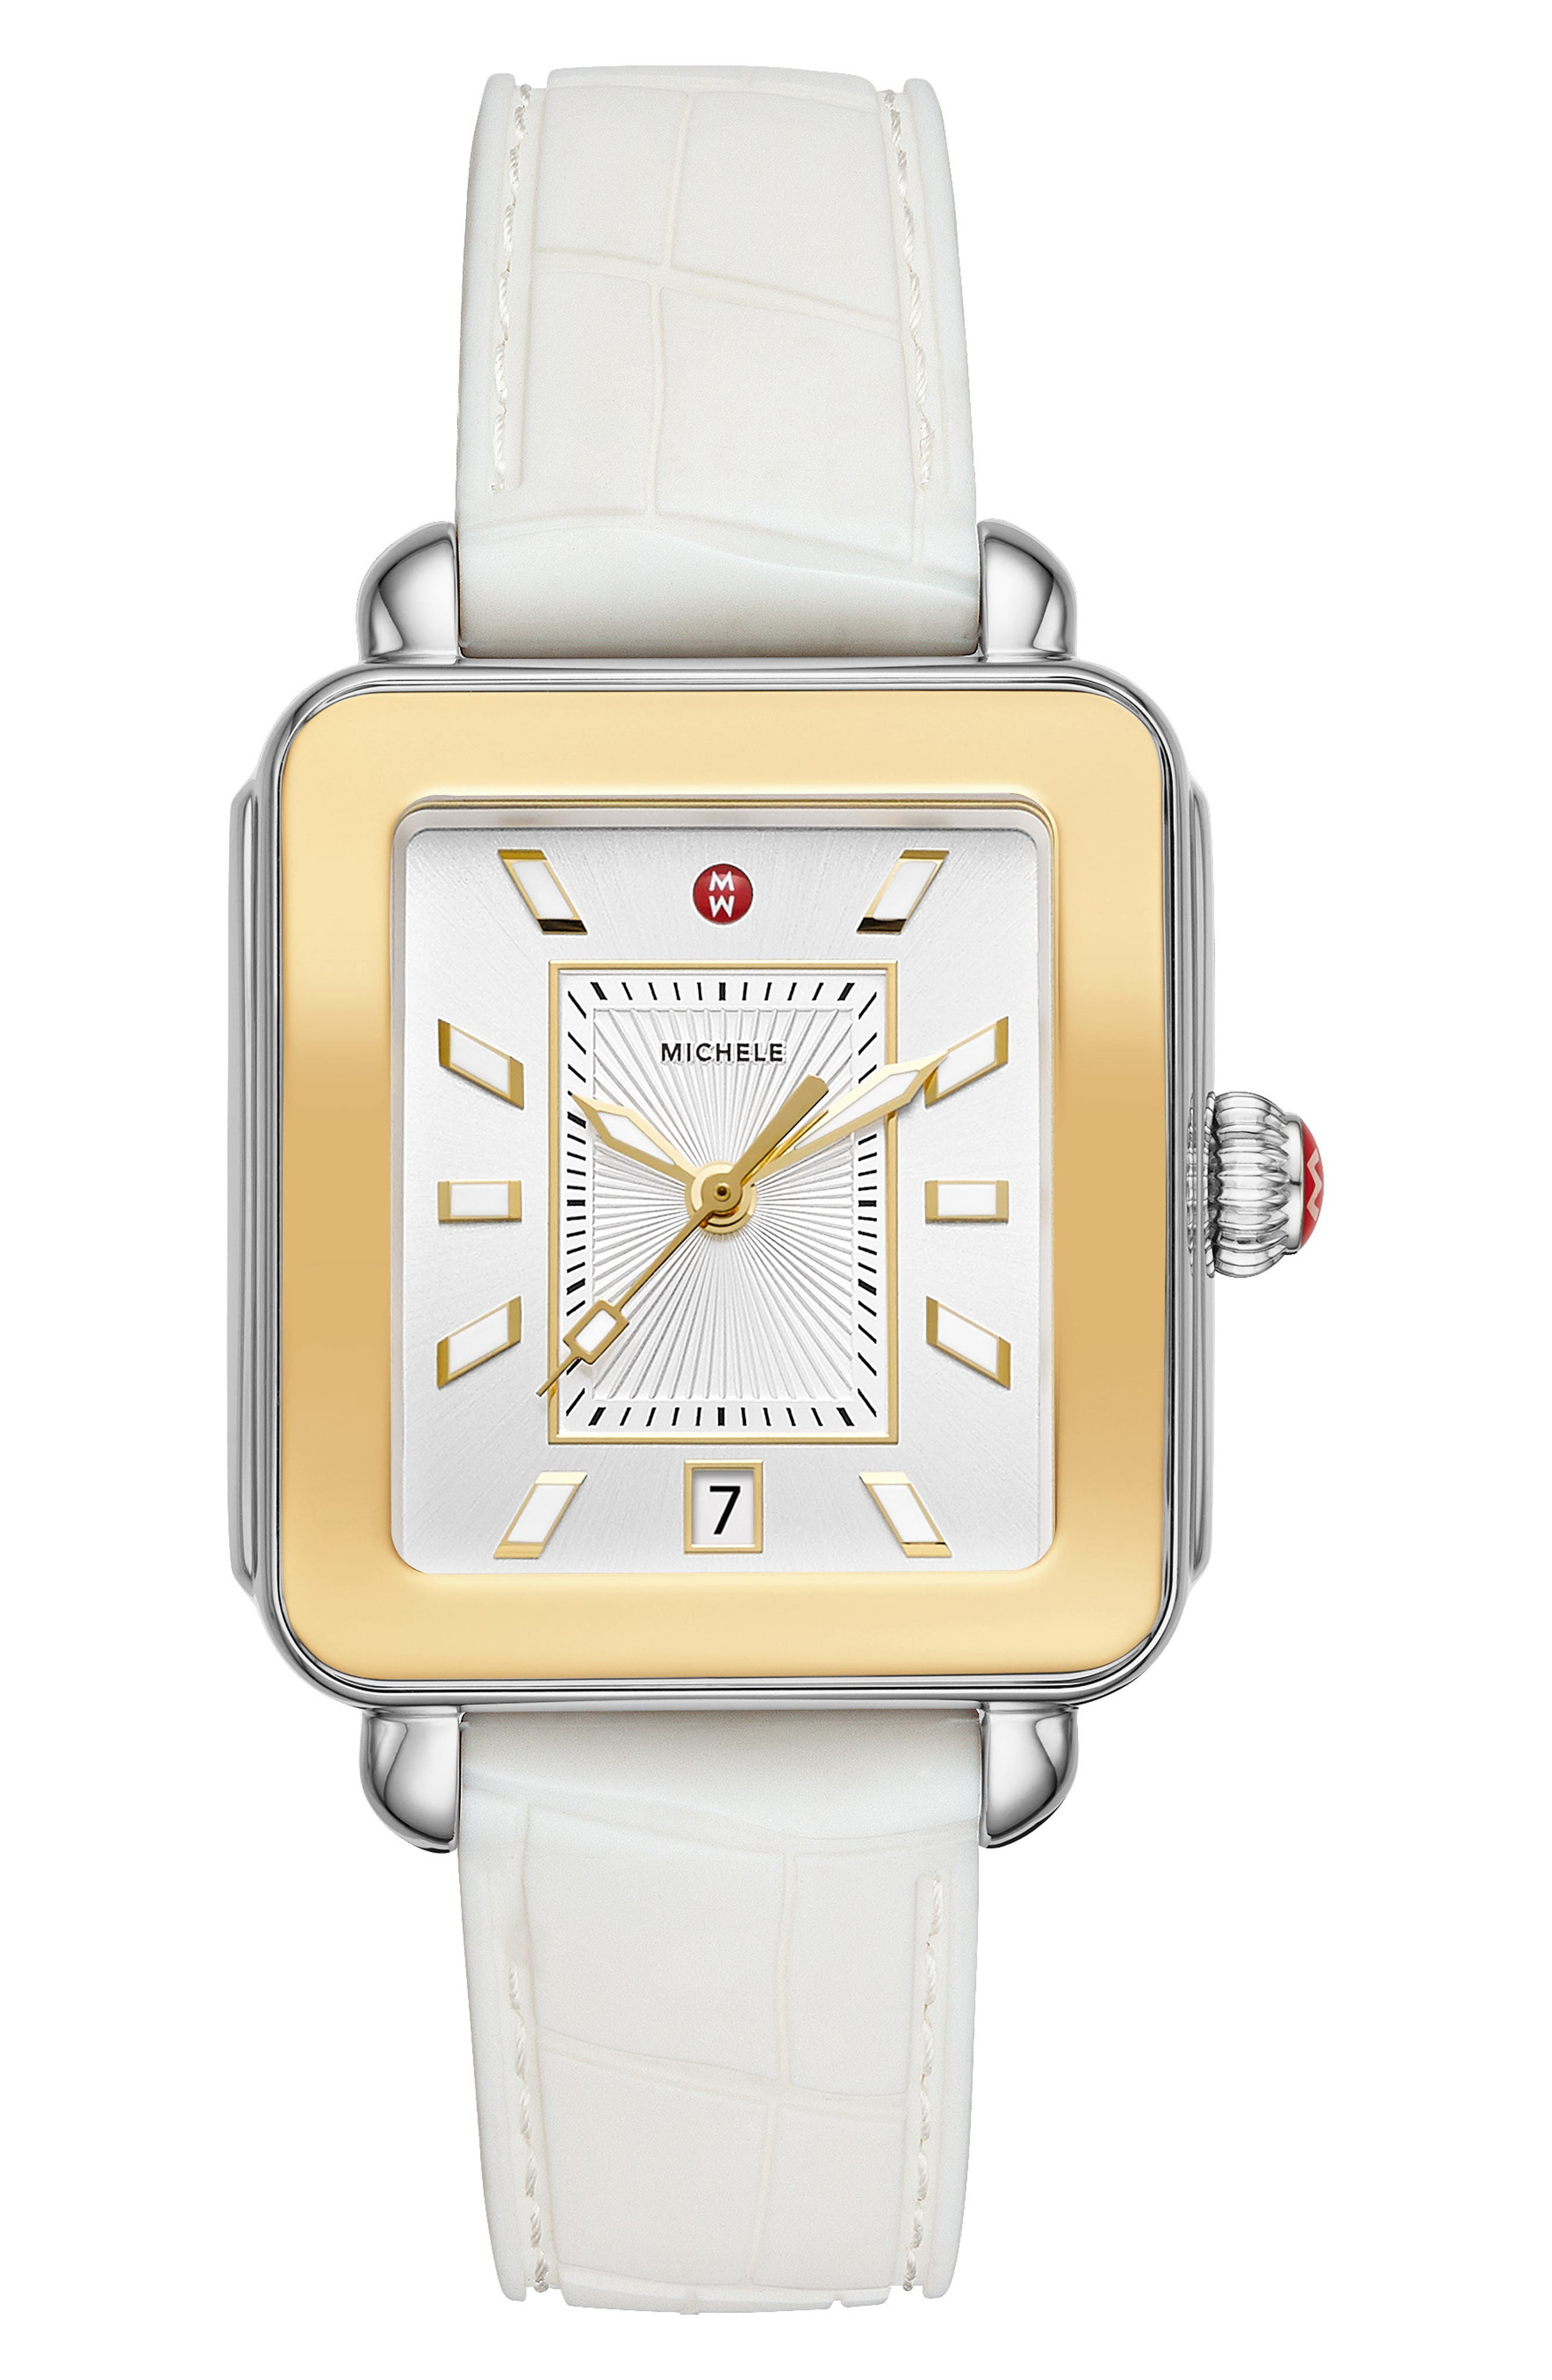 MICHELE, Deco Sport Watch Head & Silicone Strap Watch, 34mm x 36mm, Main thumbnail 1, color, WHITE/ SILVER SUNRAY/ GOLD